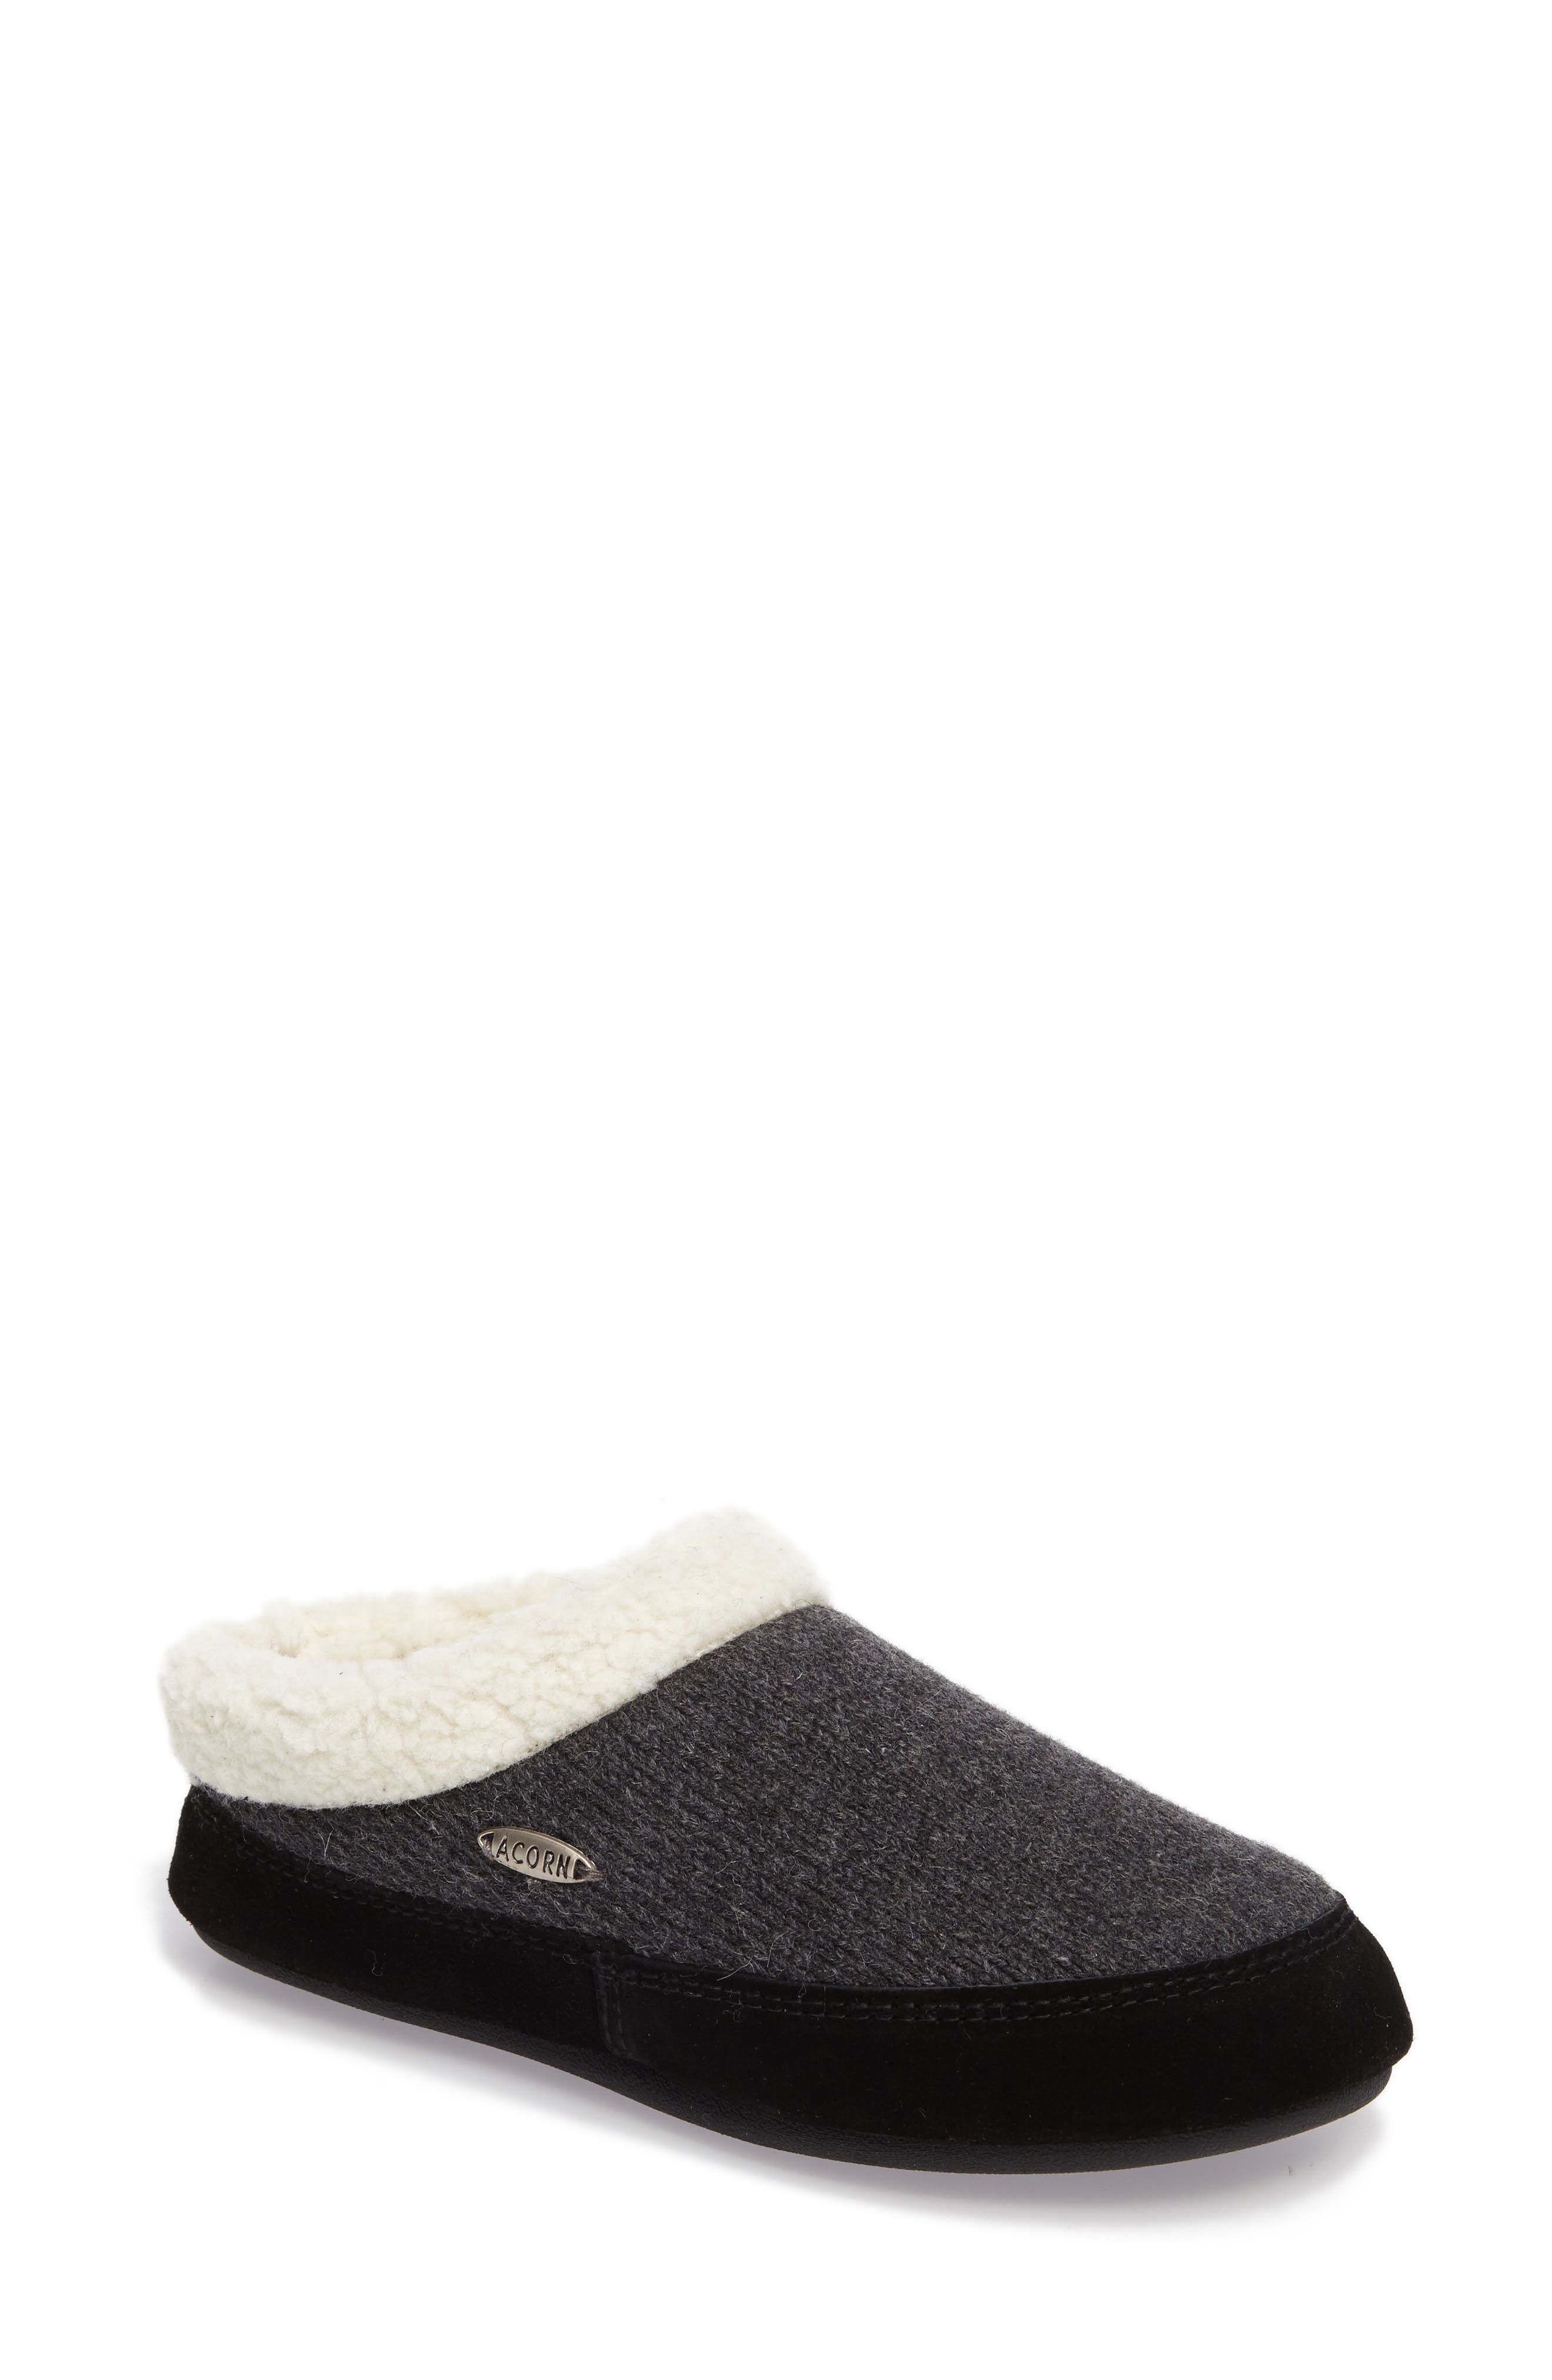 Ragg Mule Slipper,                             Main thumbnail 1, color,                             DARK CHARCOAL HEATHER